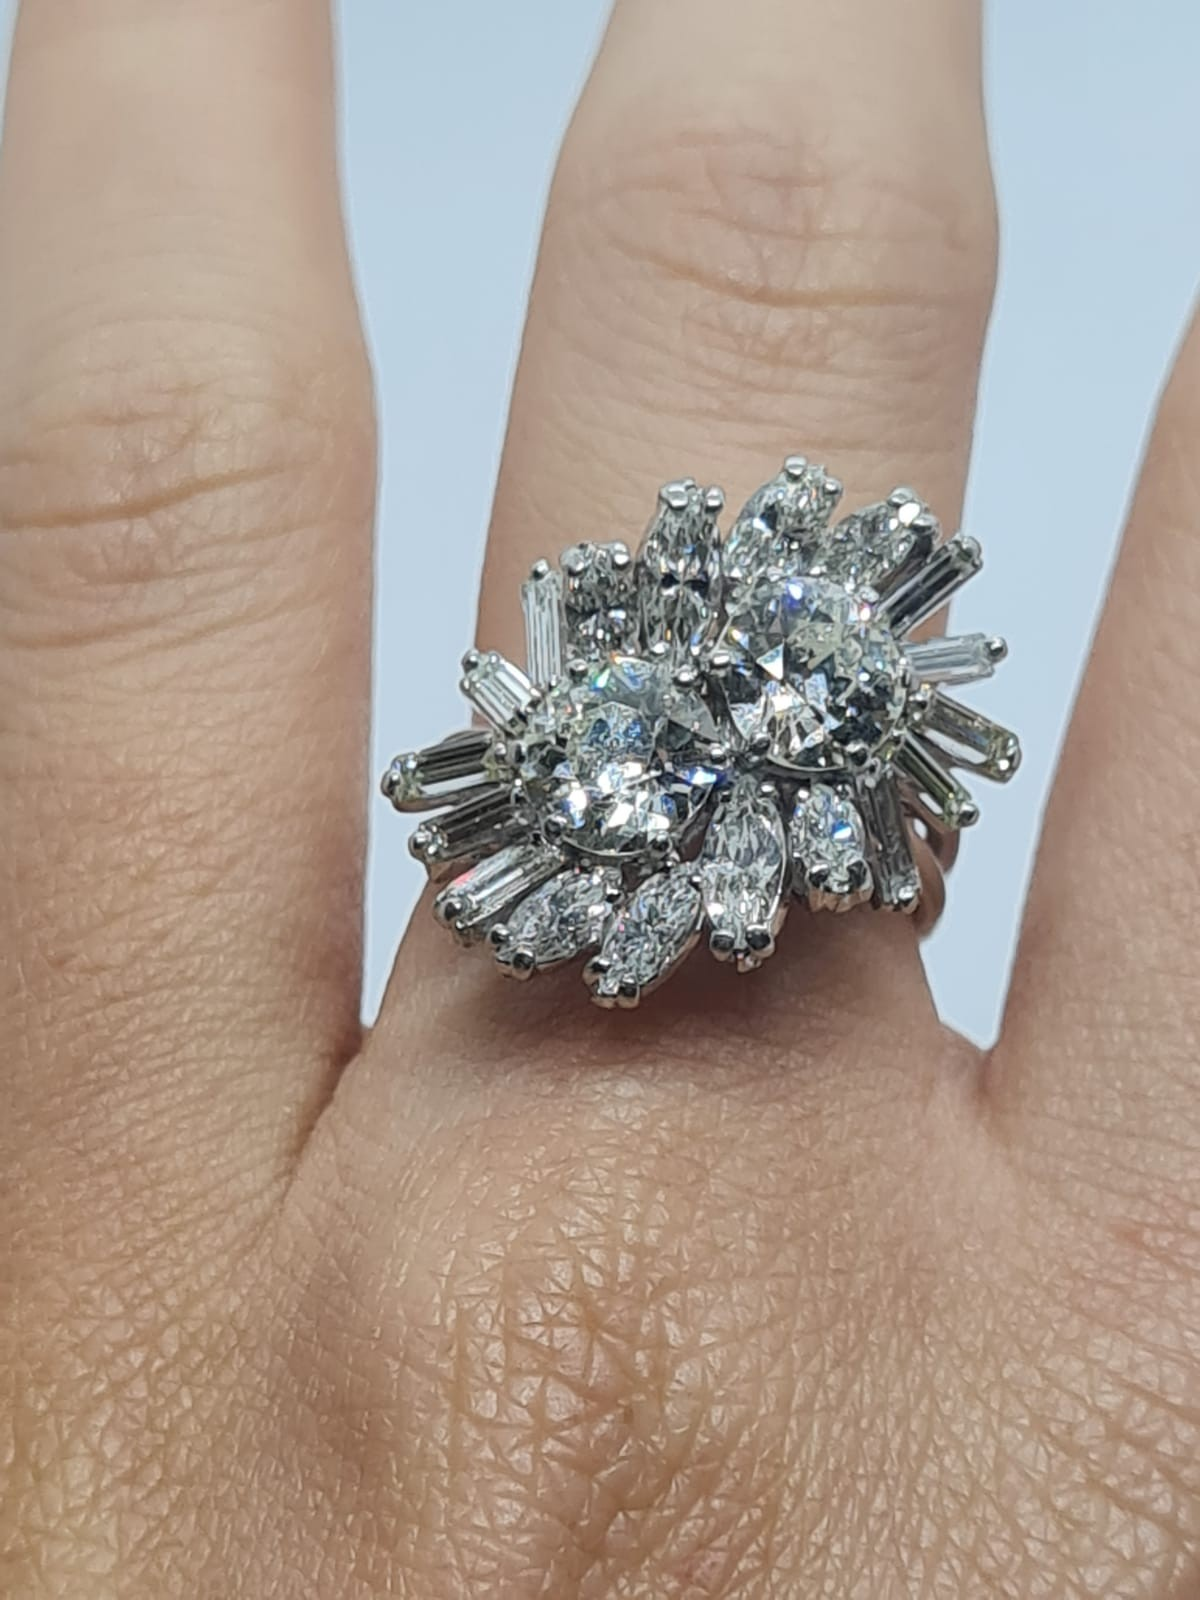 18k white gold diamond cluster ring with approx over 5ct diamonds in total, weight 10g and size M1/2 - Image 10 of 11